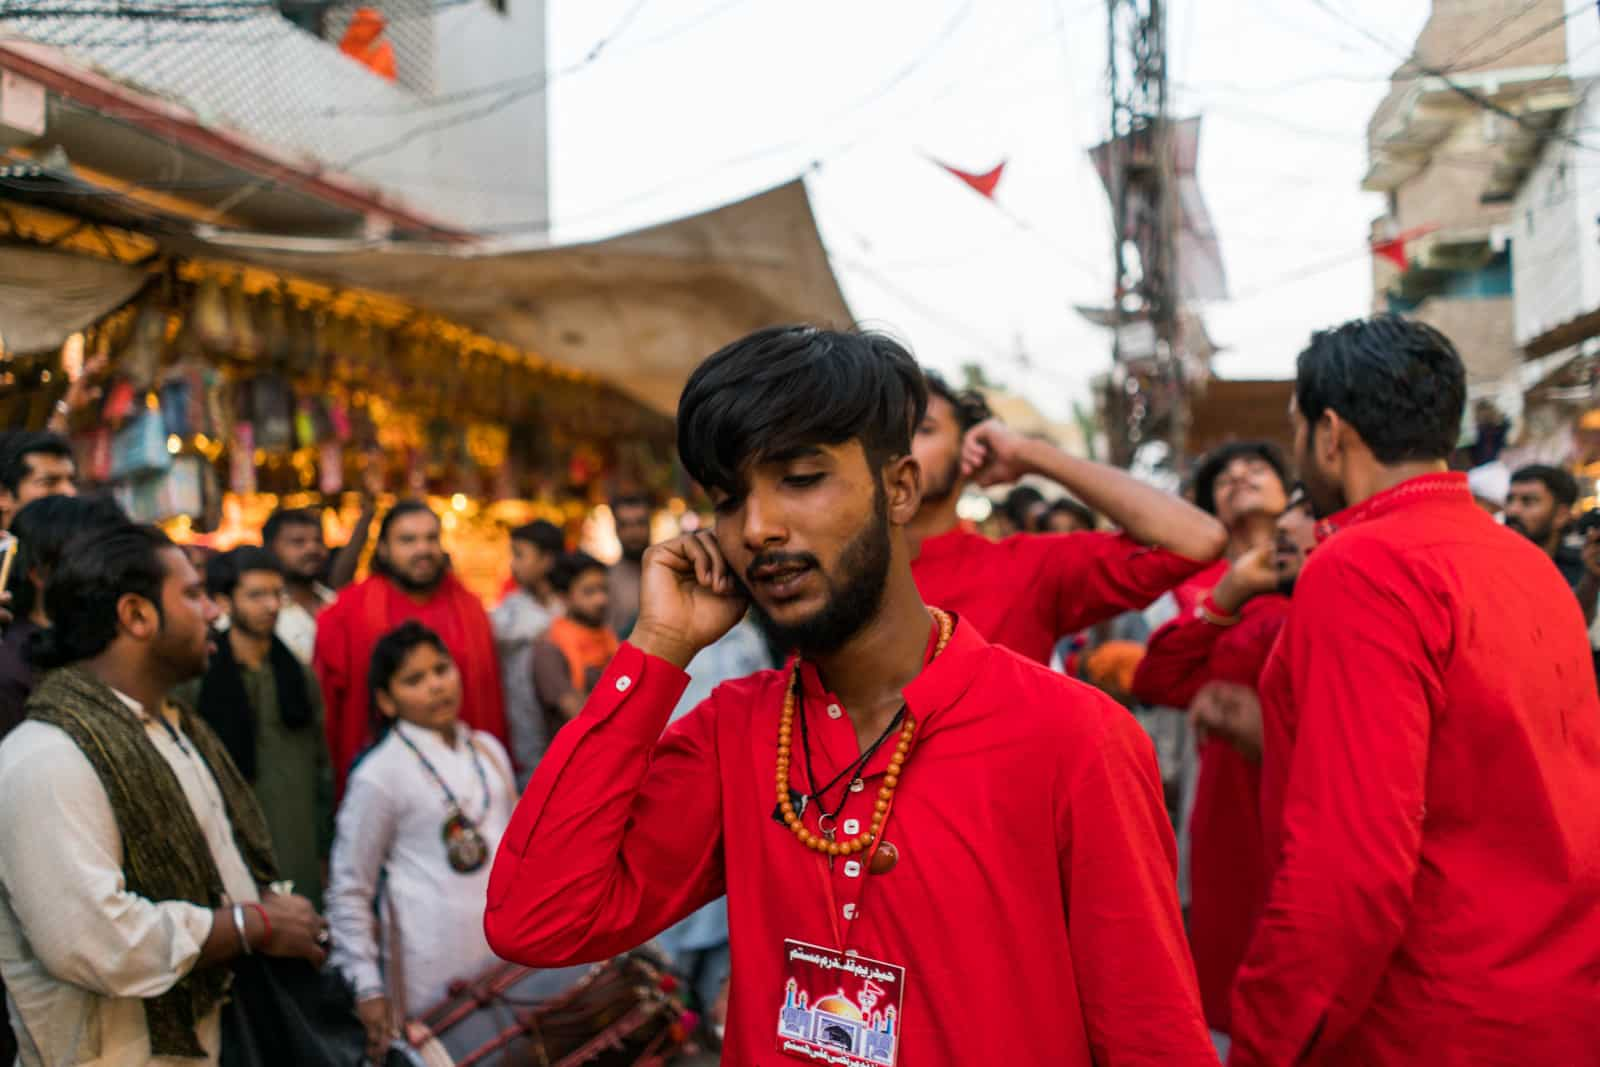 The Urs of Lal Shahbaz Qalandar in Sehwan, Pakistan - Boy in red dancing outside shrine - Lost With Purpose travel blog